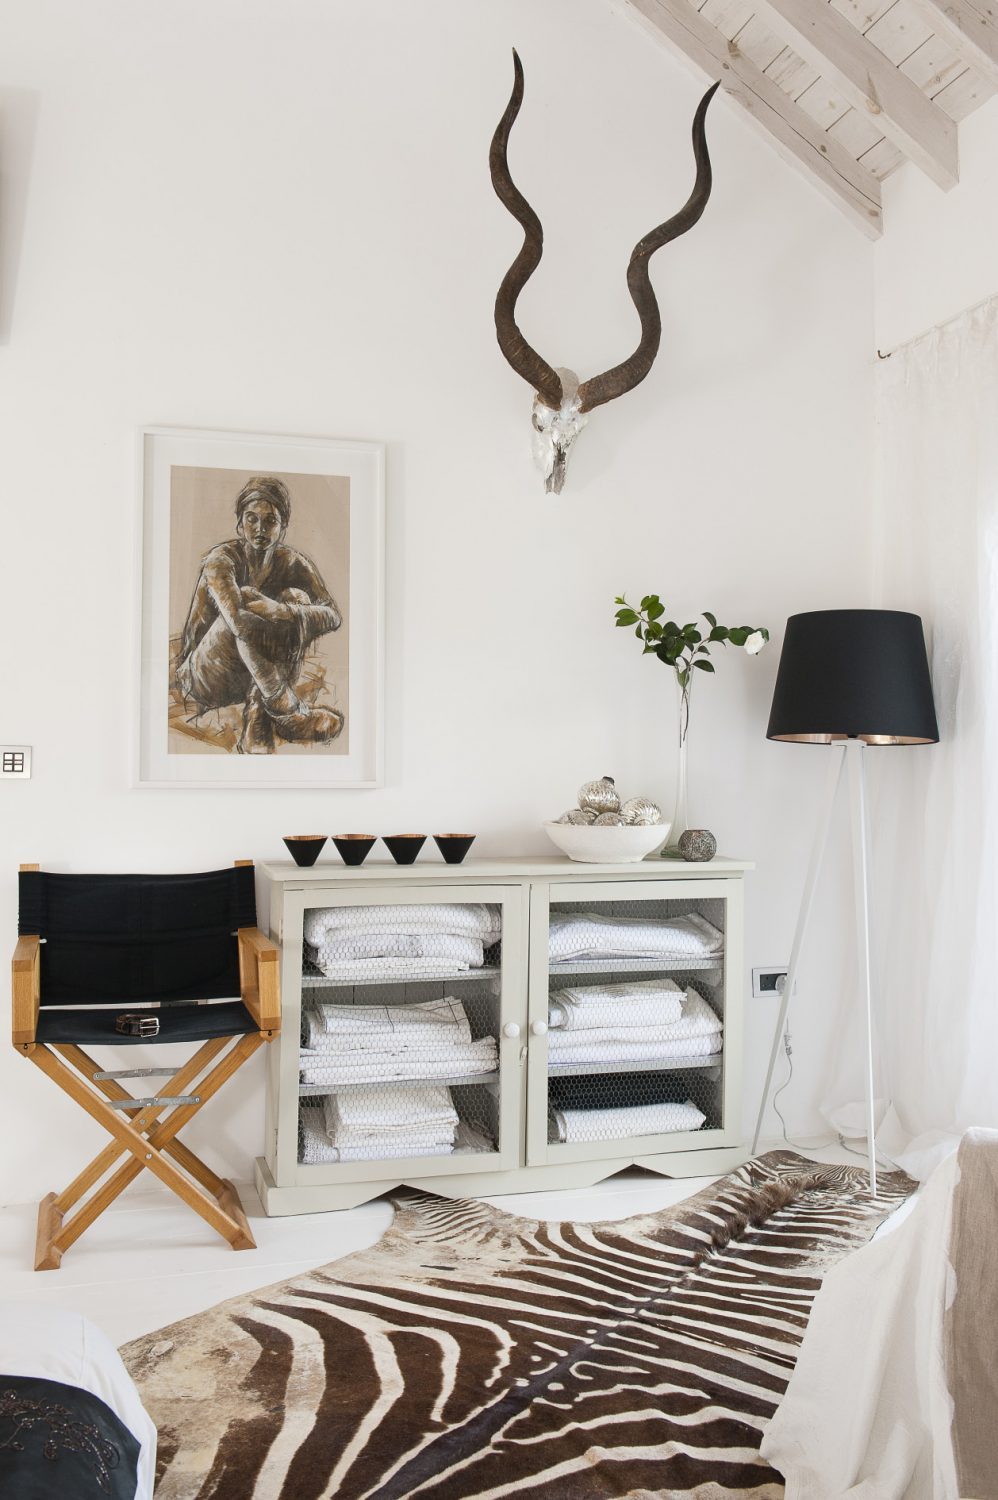 On the wall opposite the chic master bed is a magnificent pair of silver-leafed kudu horns and an oil and charcoal on paper by one of Sue's favourite artists, and her teacher, East Sussex-based Nicola King